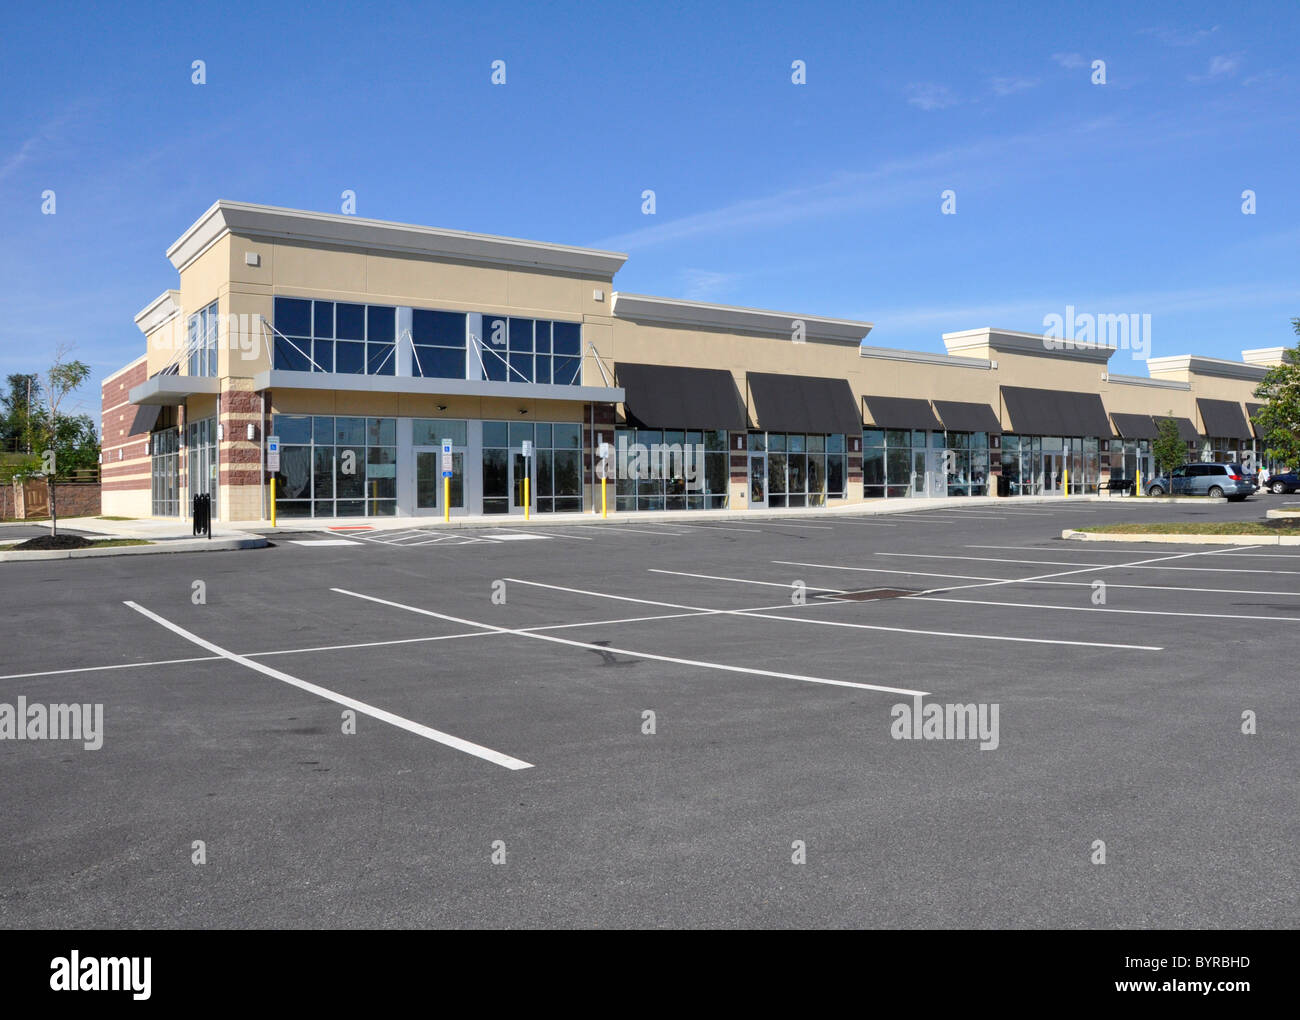 Exterior of several storefronts for a shopping area - Stock Image